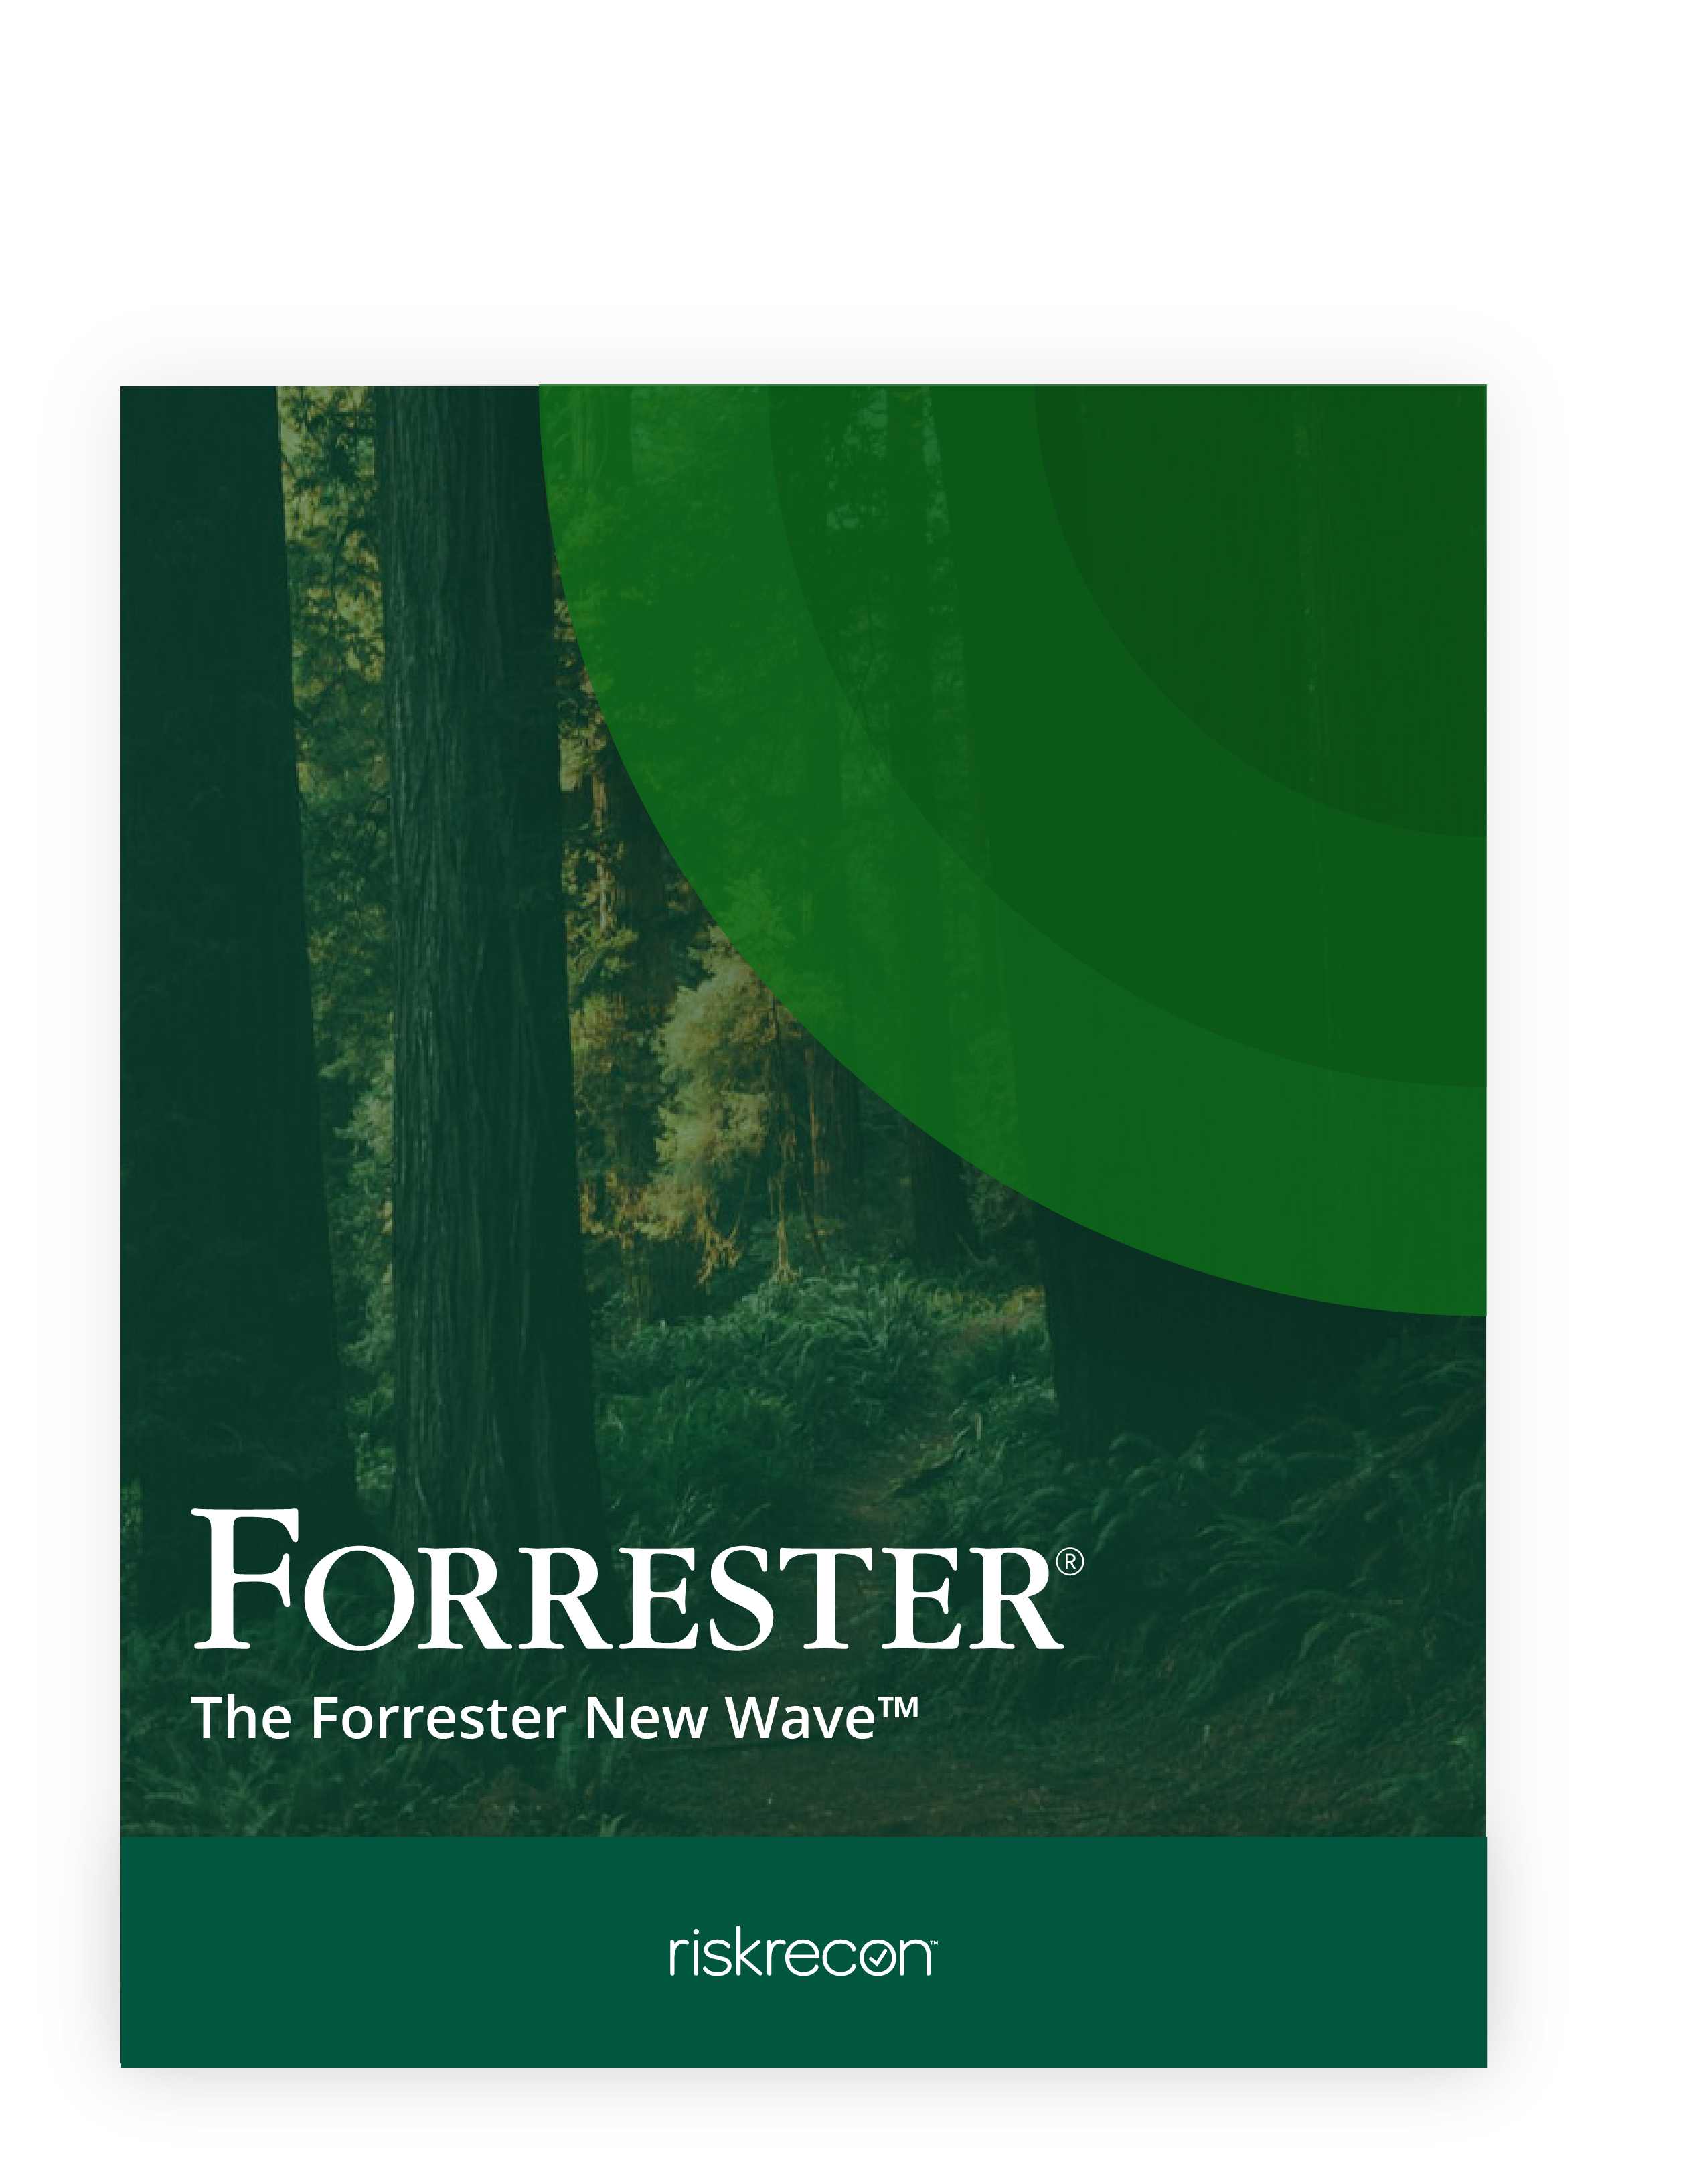 Forrester-Shadow@3x